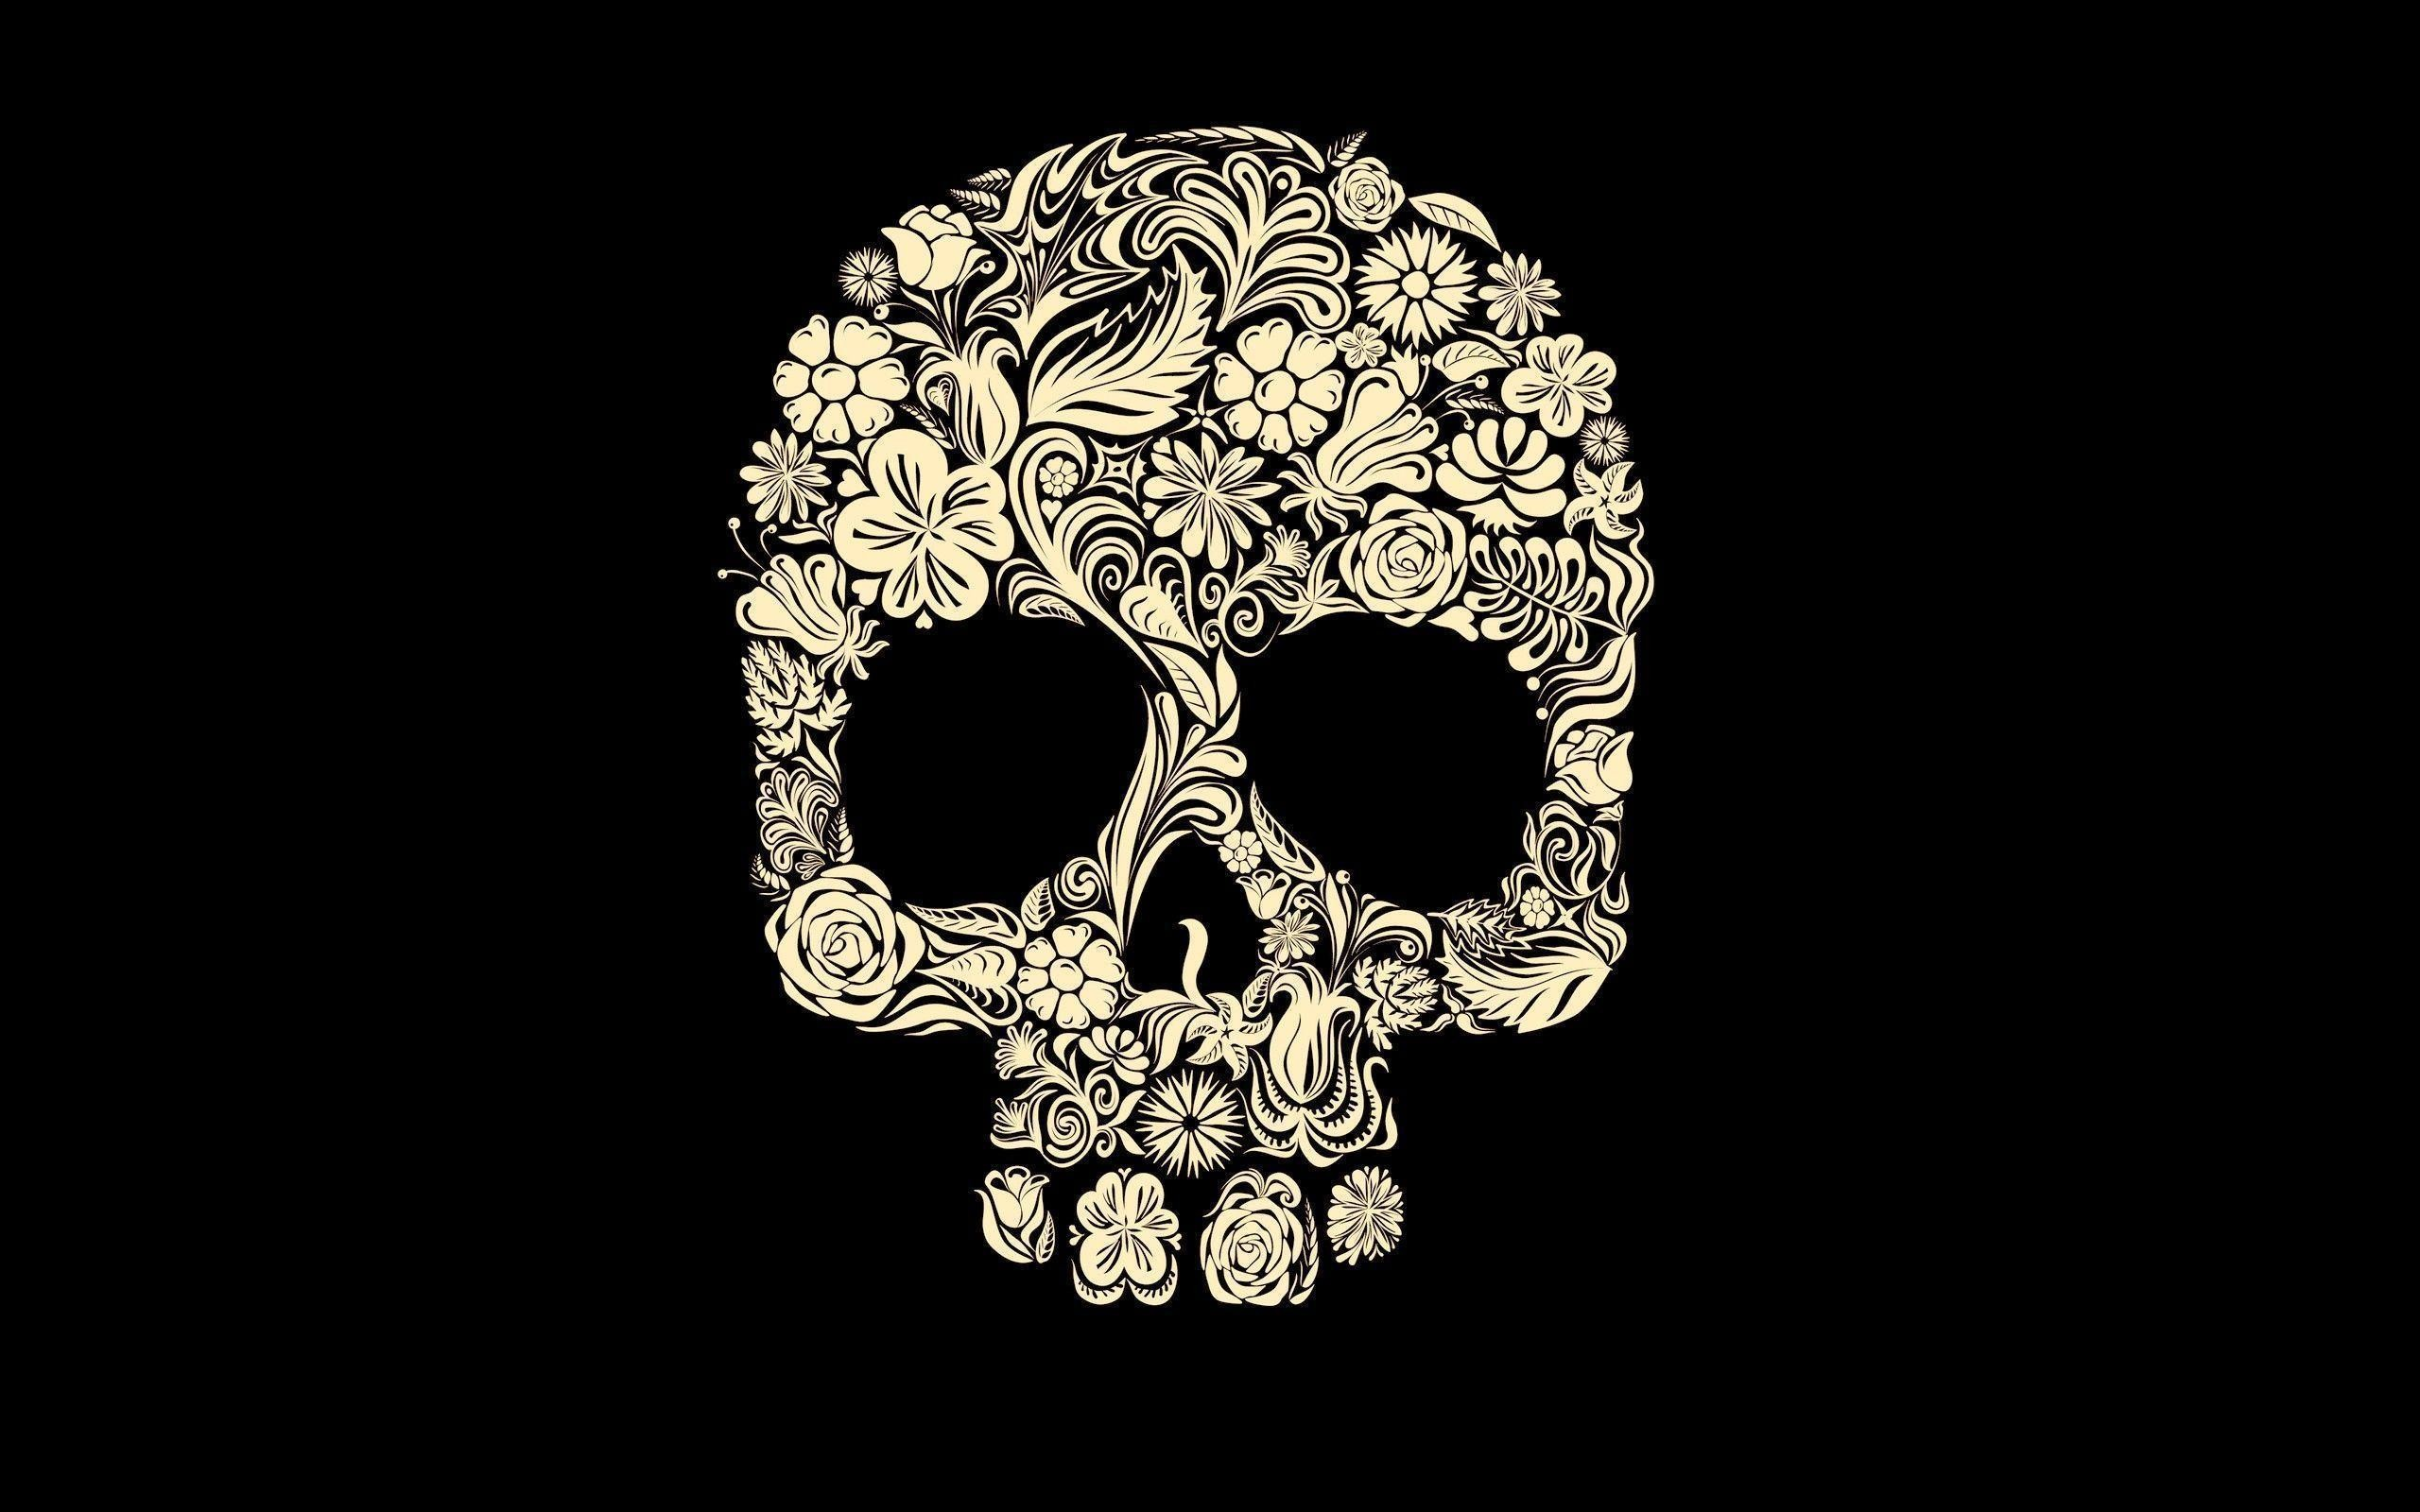 Skull wallpapers for android skull wallpapers voltagebd Choice Image